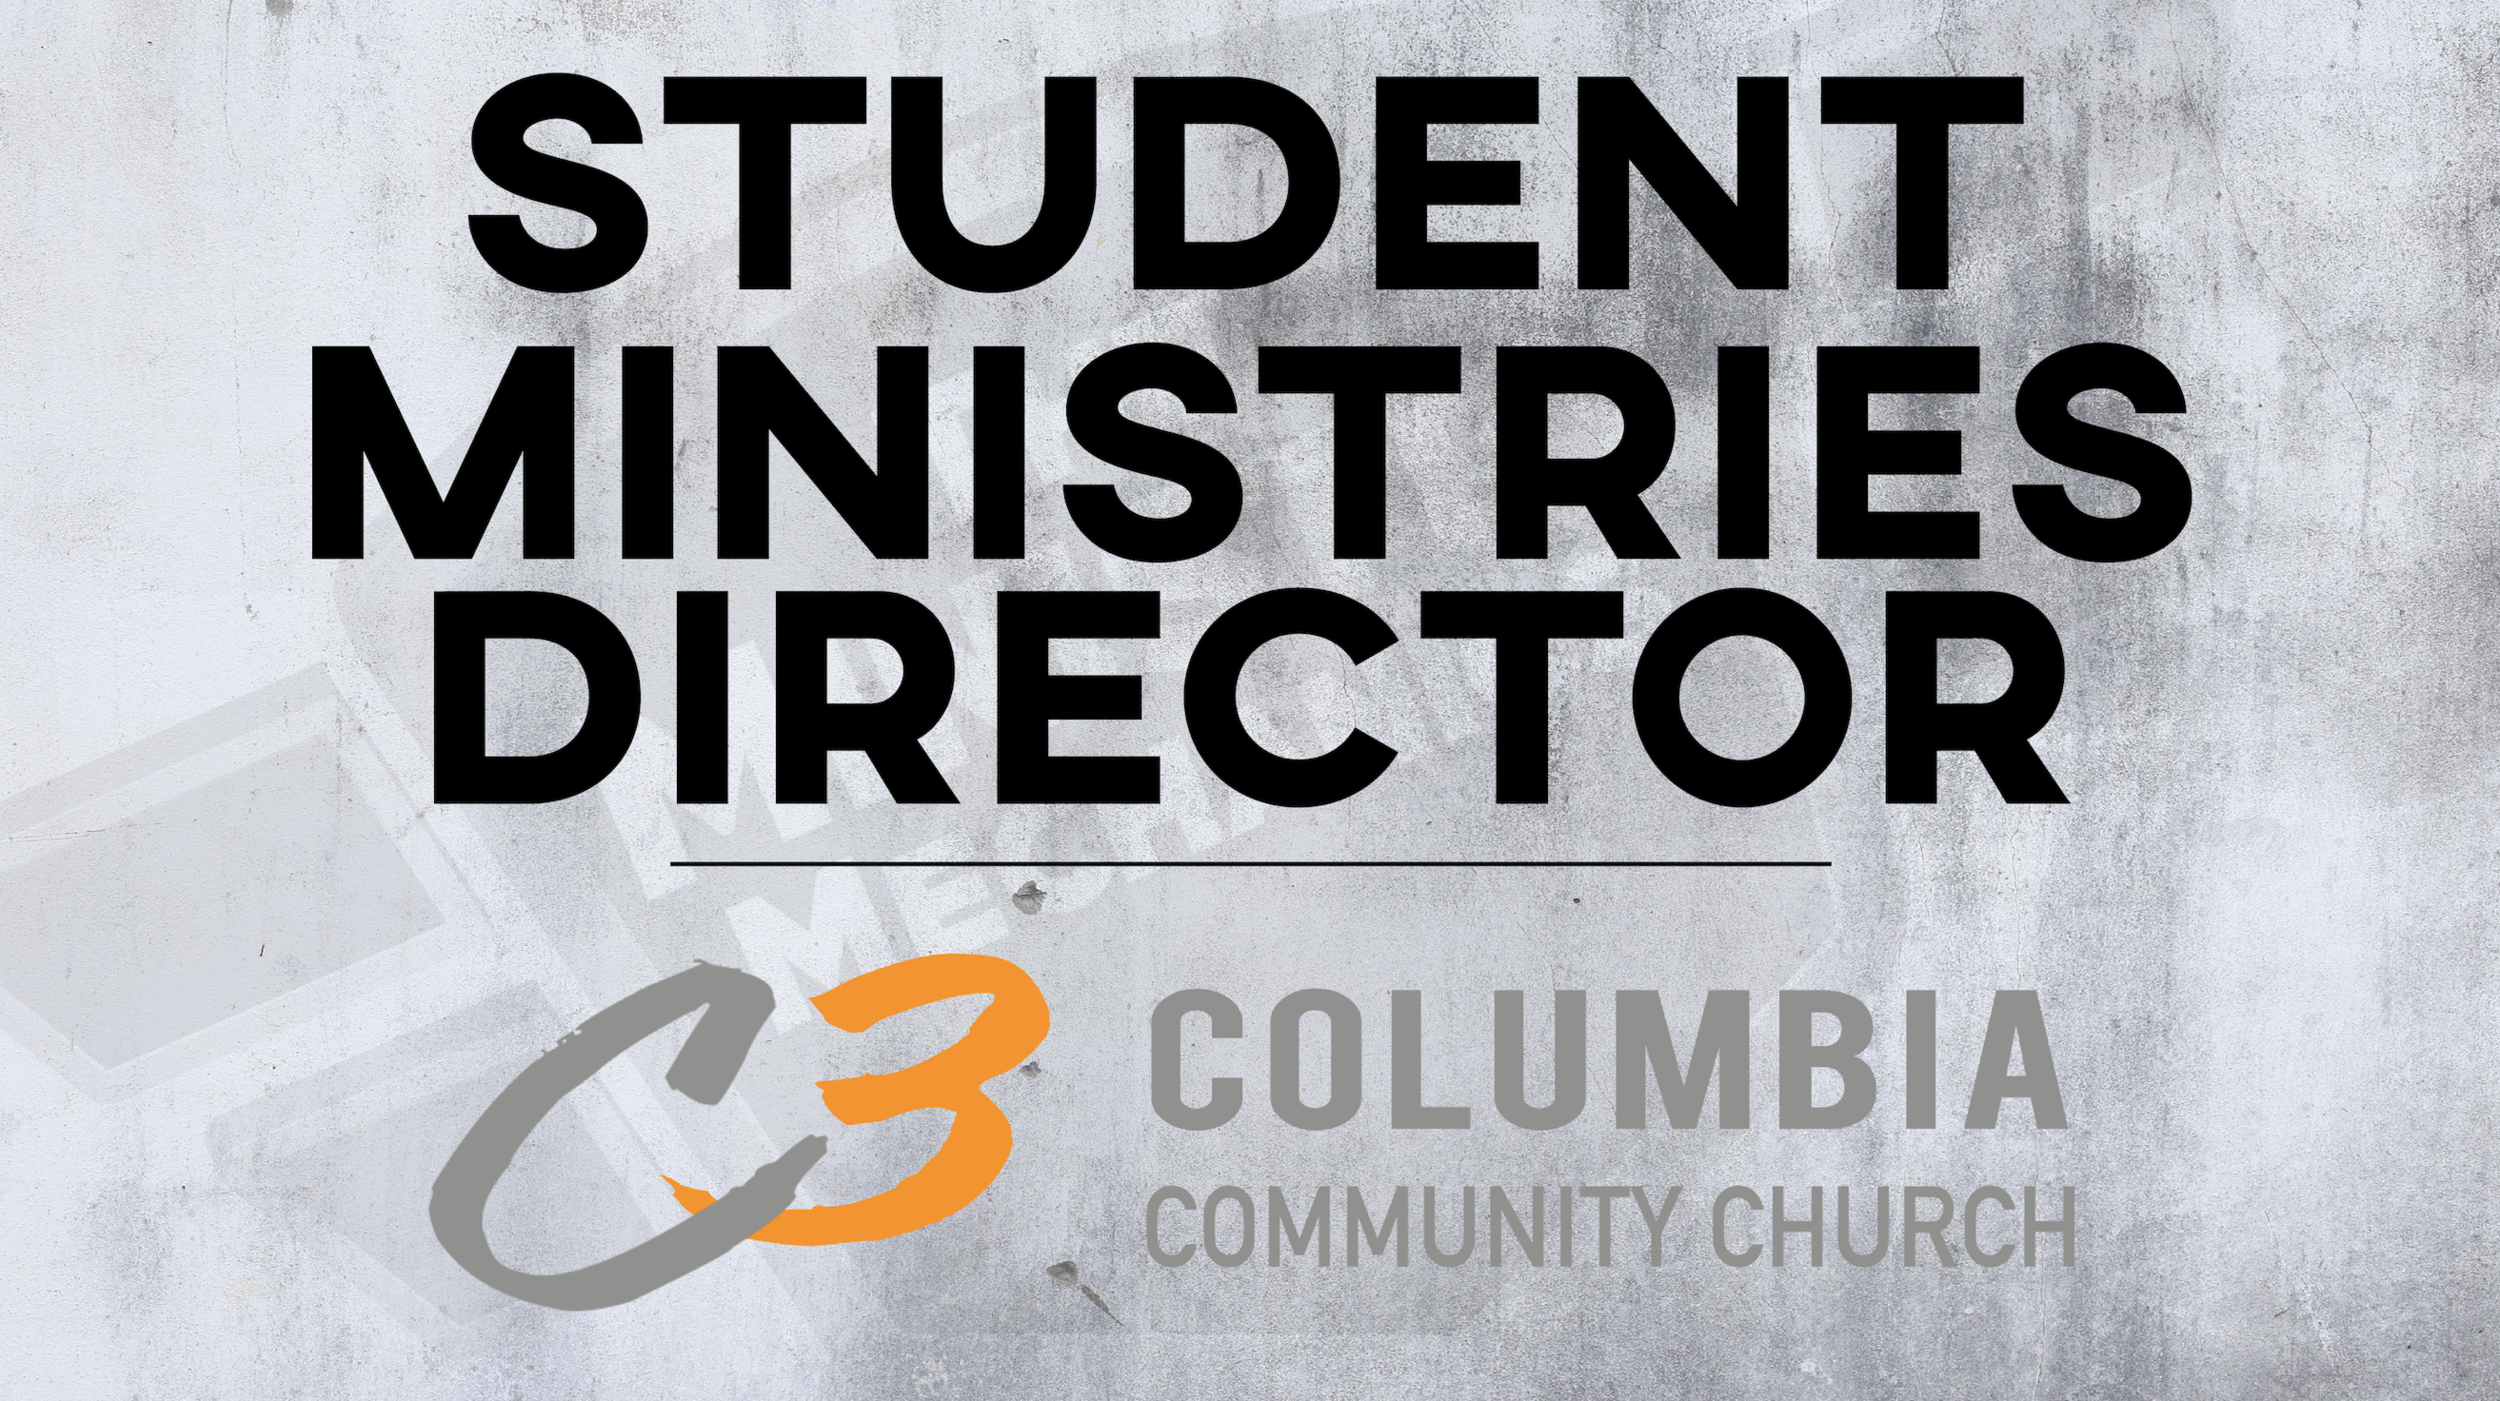 Columbia Community Church Student Ministries Director 16x9.png